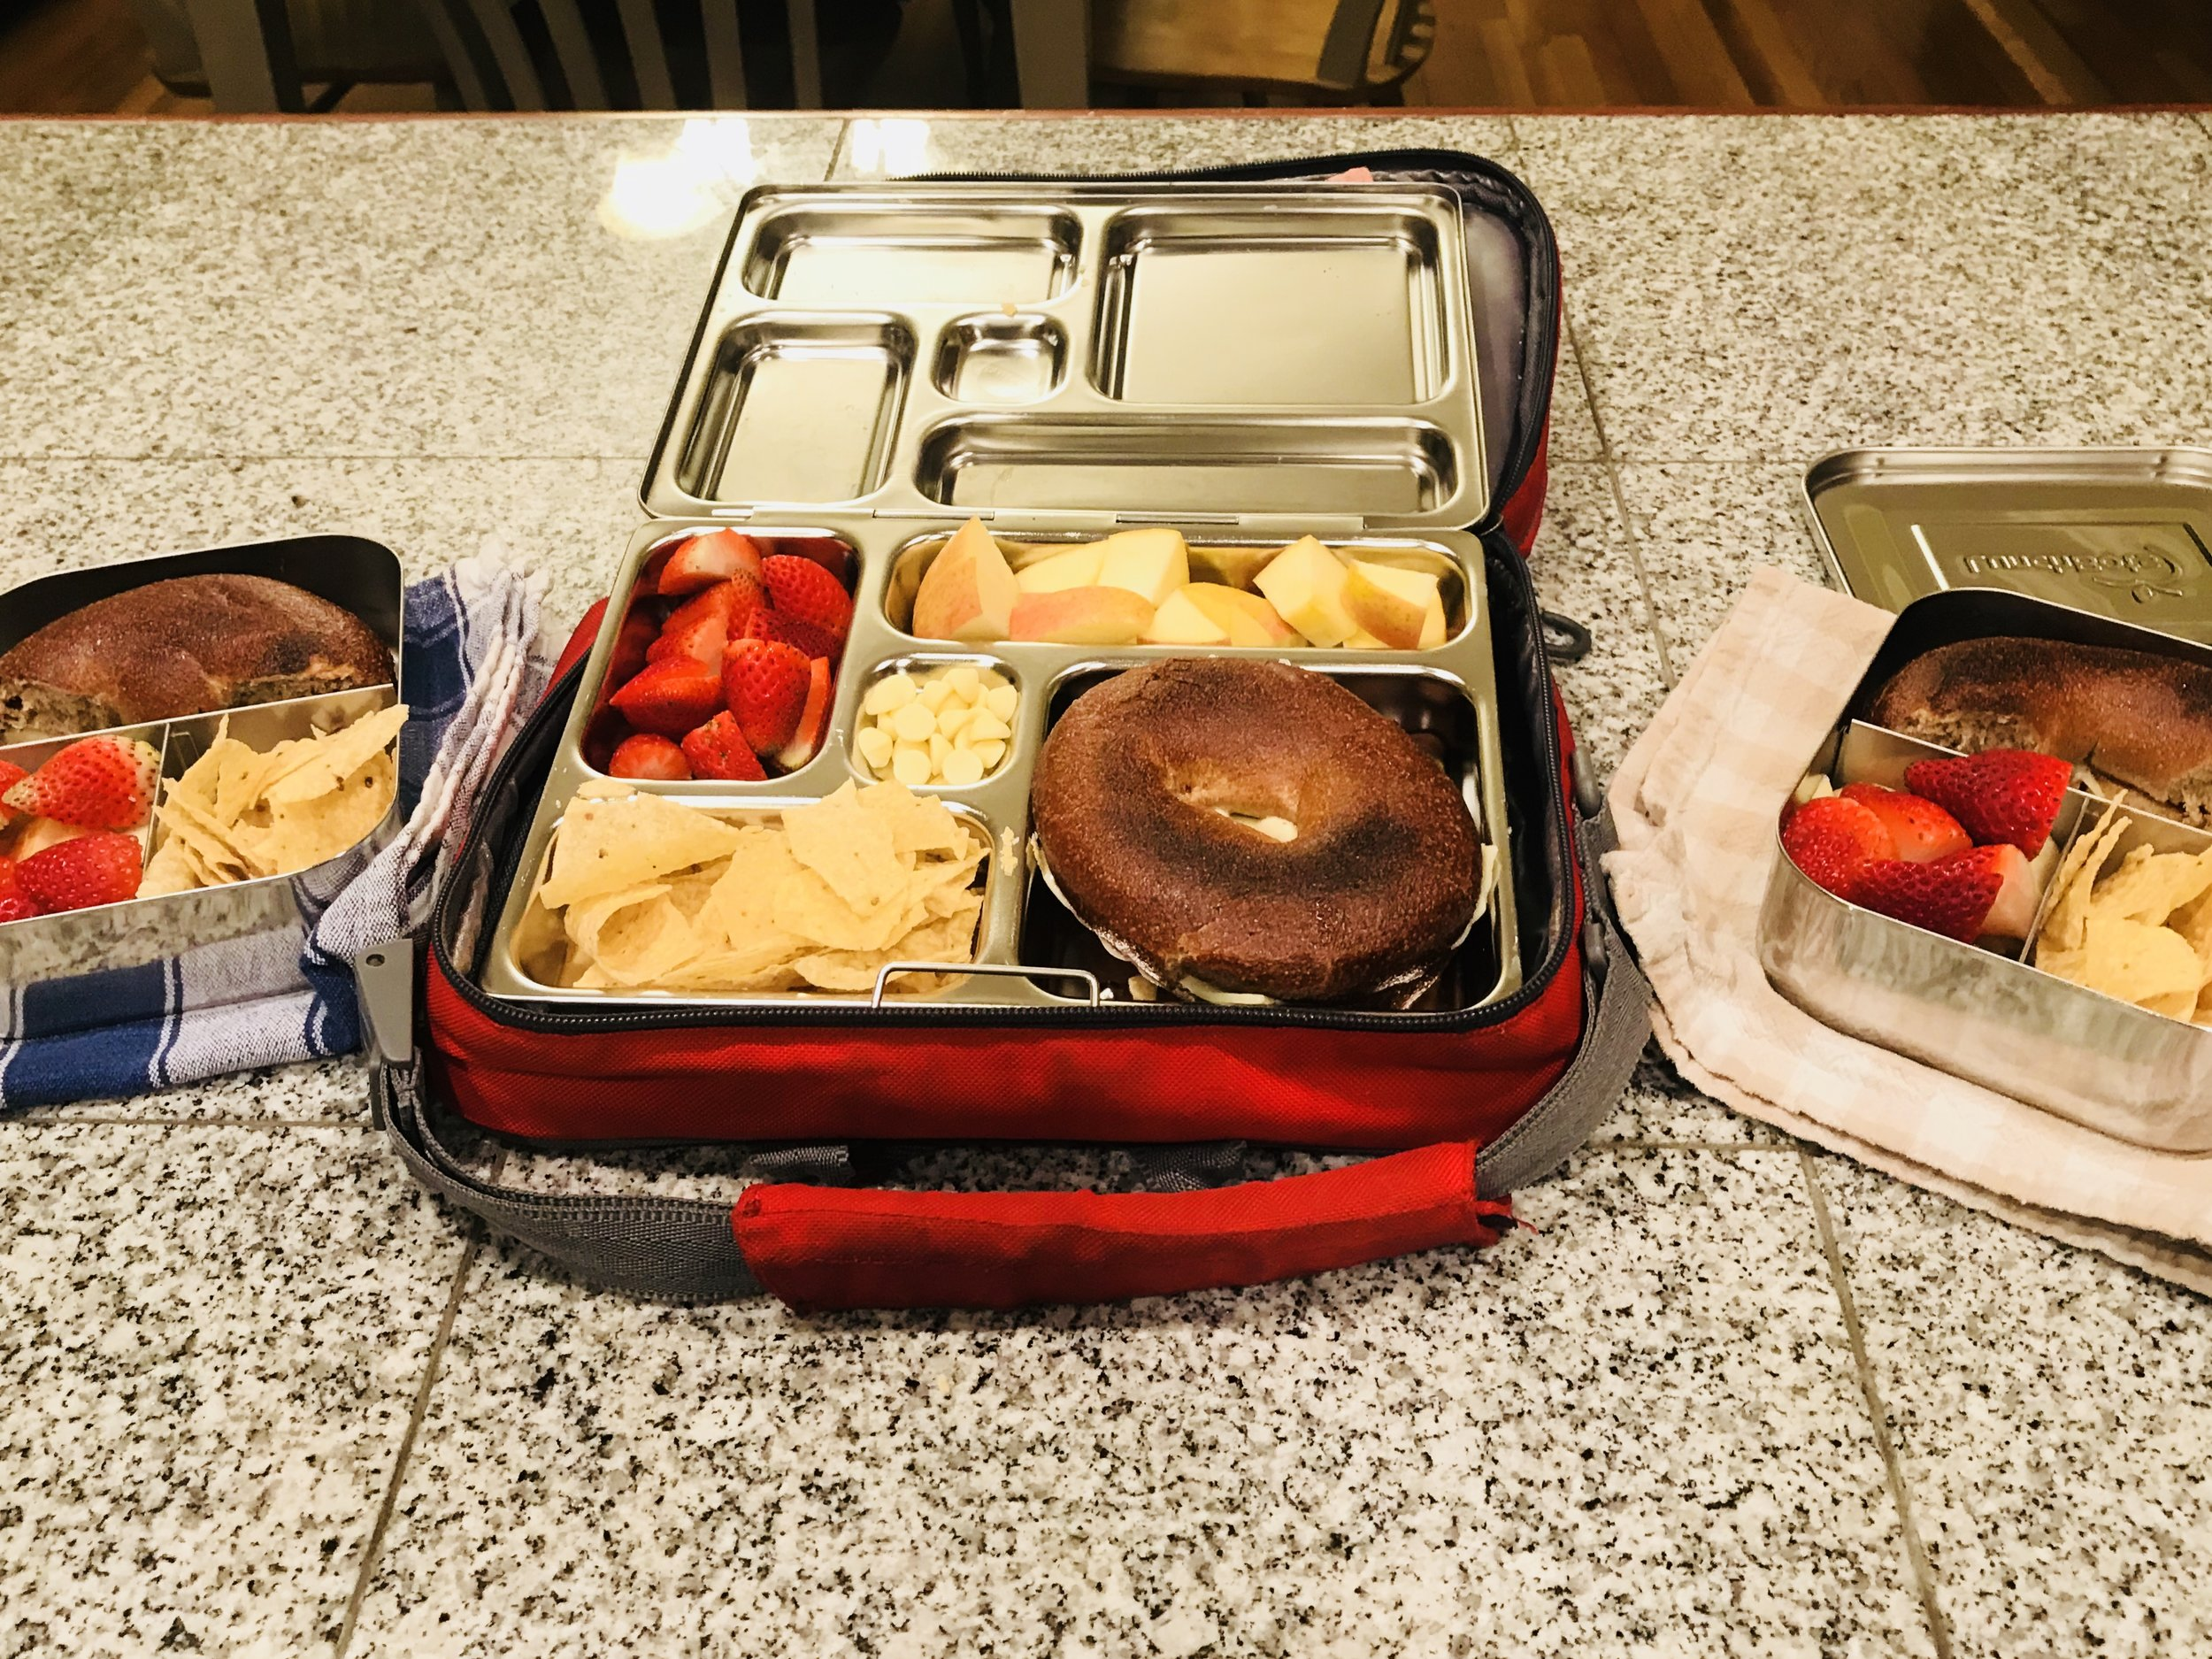 Kids lunches! No, I don't love the one kid the most. My big girls like the smaller containers better, and my littlest always each every last bit of this huge lunch. IDK. It's just the way it is.